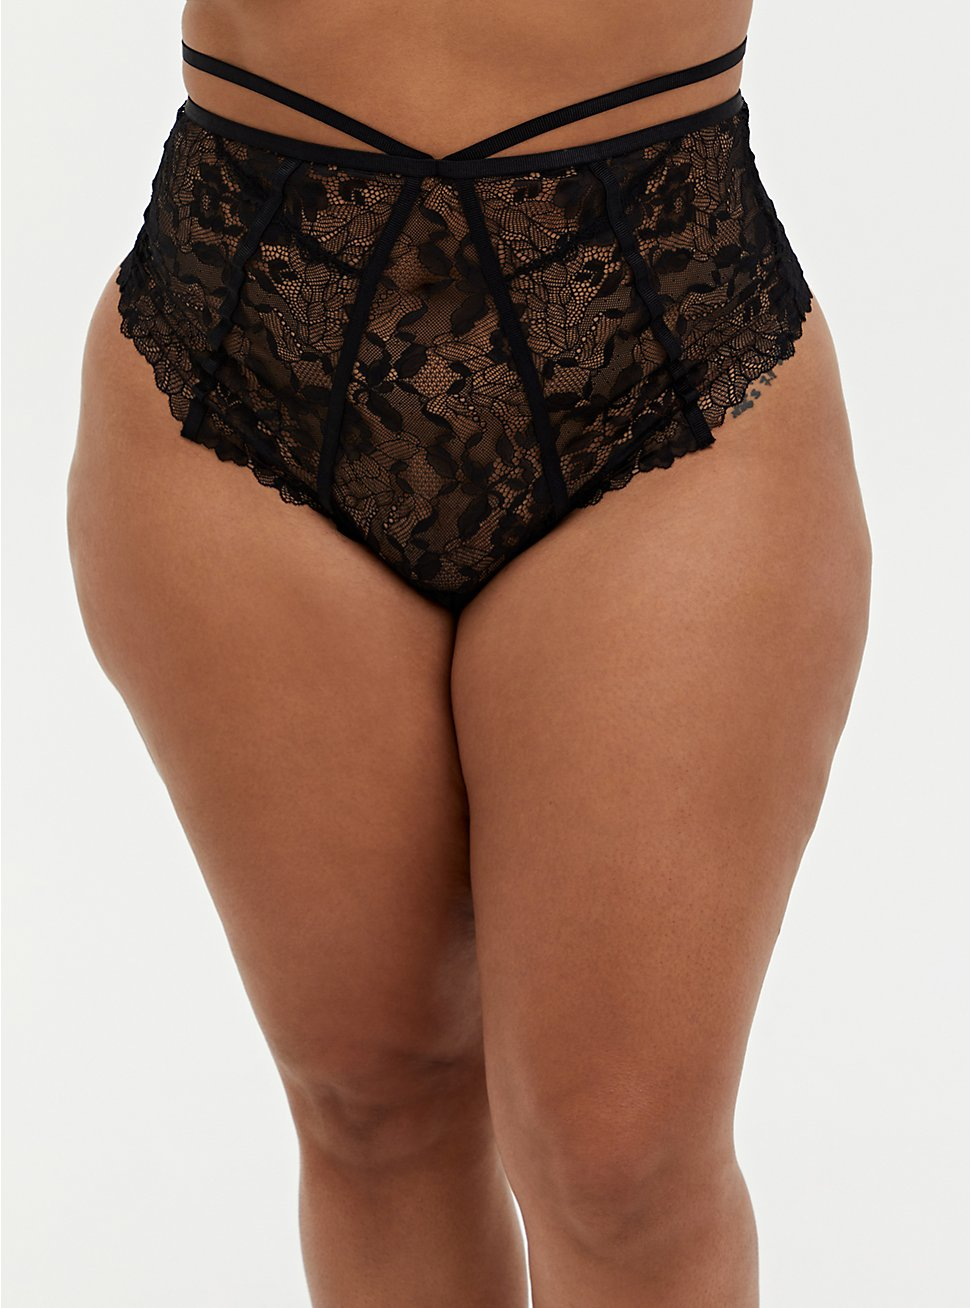 Black Lace Strappy Open Back High Waist Thong Panty, RICH BLACK, hi-res